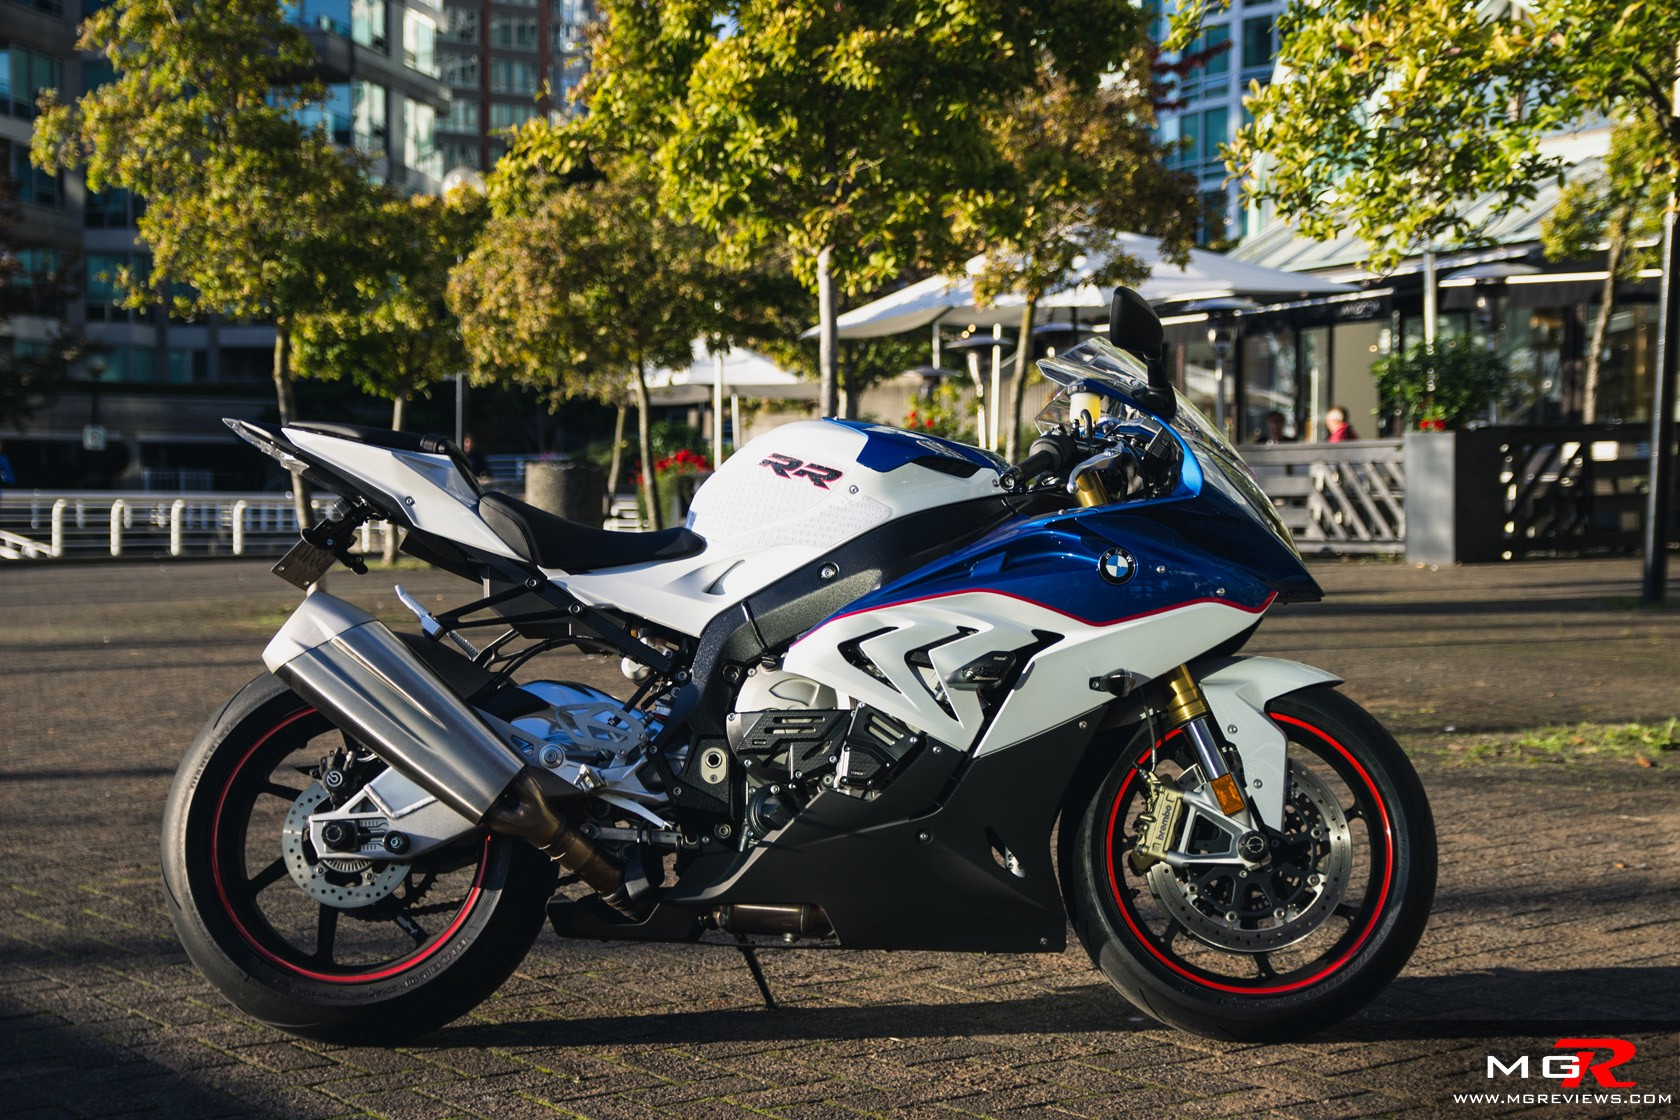 Review 2016 Bmw S1000rr By Mike Ginsca Mgreviews Com By Mike Ginsca Medium